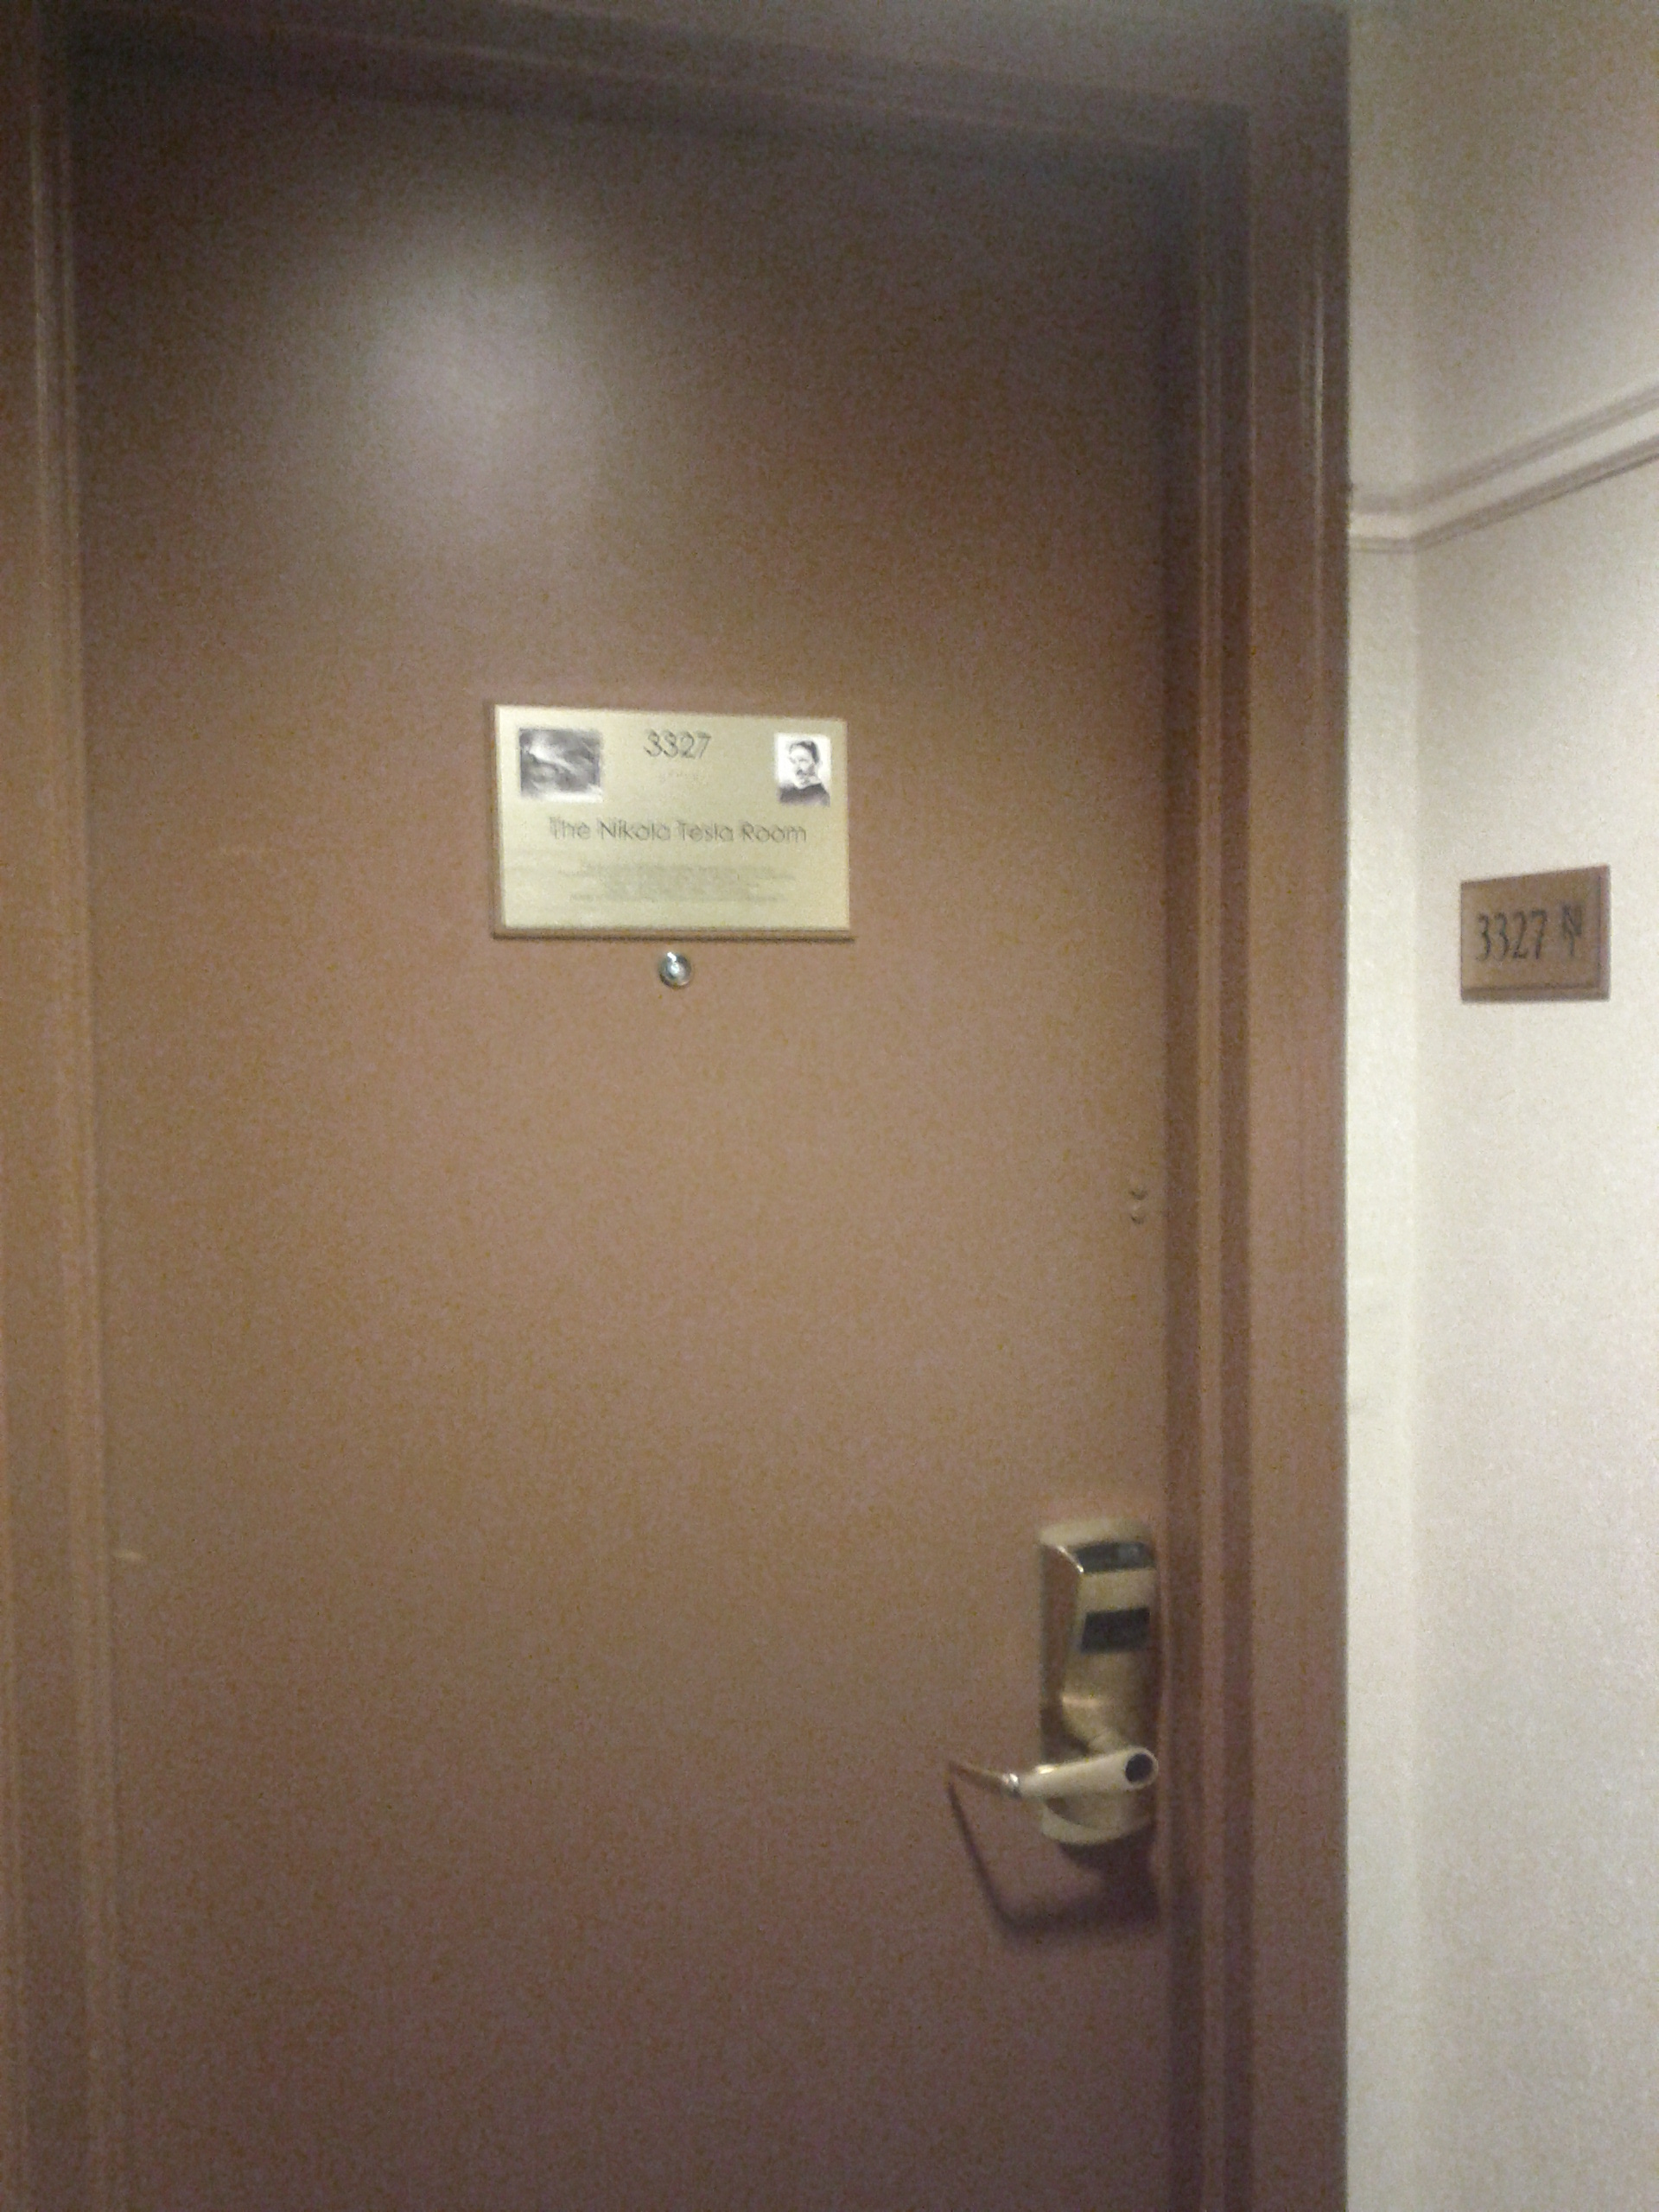 file new yorker hotel nikola tesla apartment door 3327